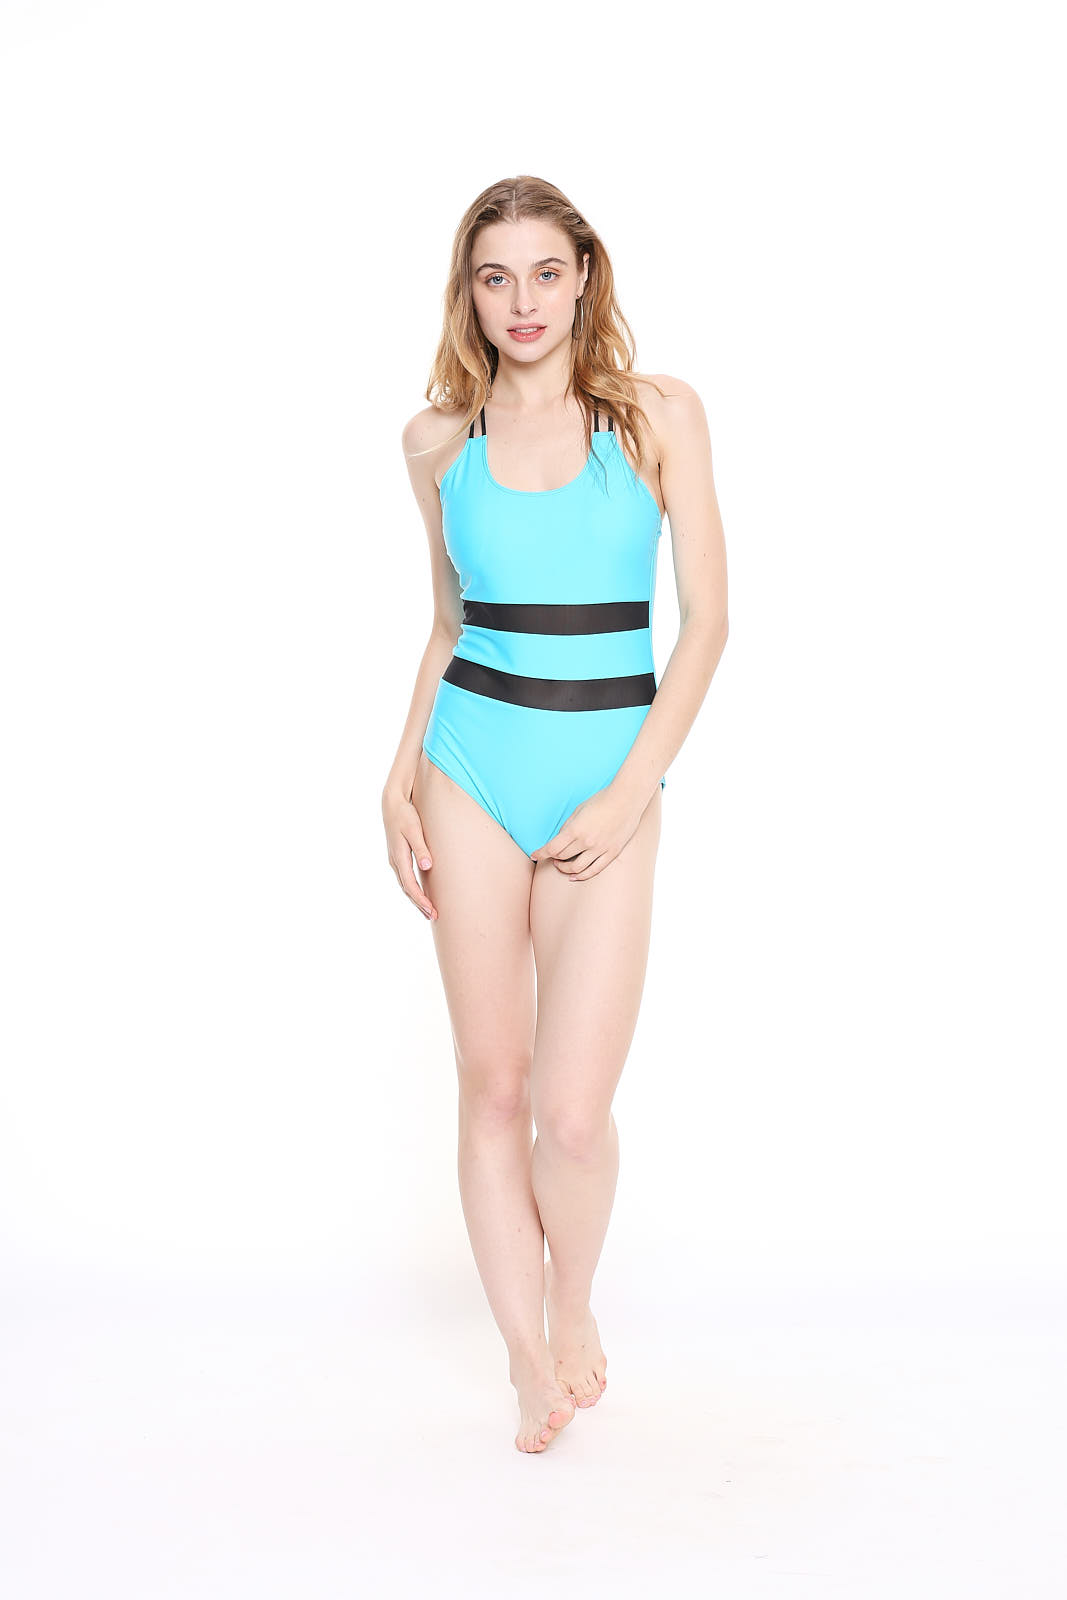 TURQUOISE MESH CROSSBACK SWIMSUIT Turquoise - XS - Body Fit (Turquoise, XXXL, Body Fit)